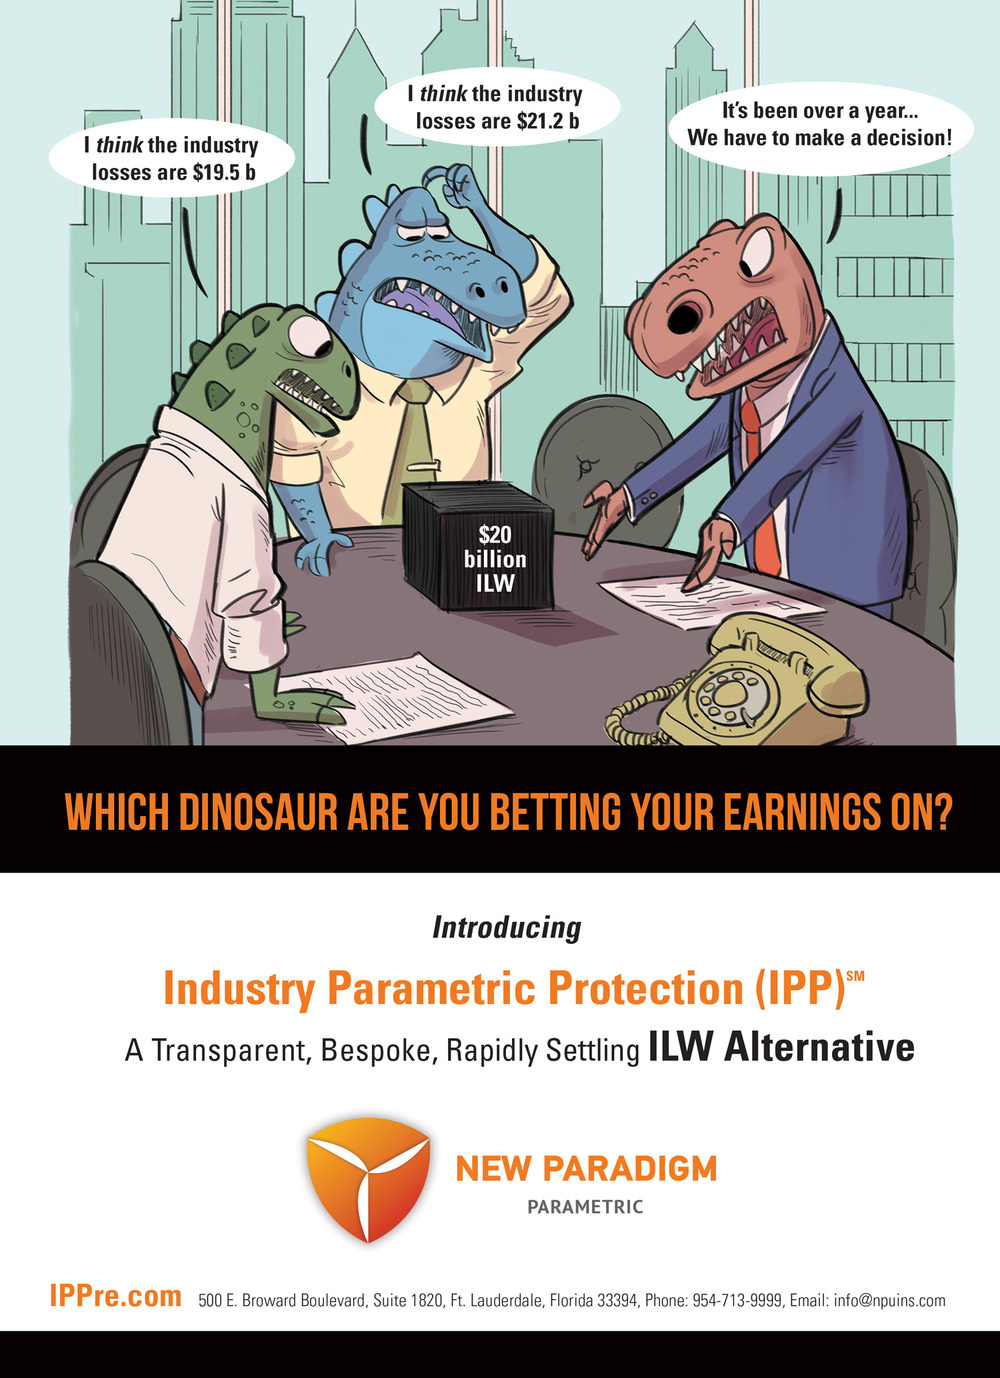 New Paradigm Parametric Insurance